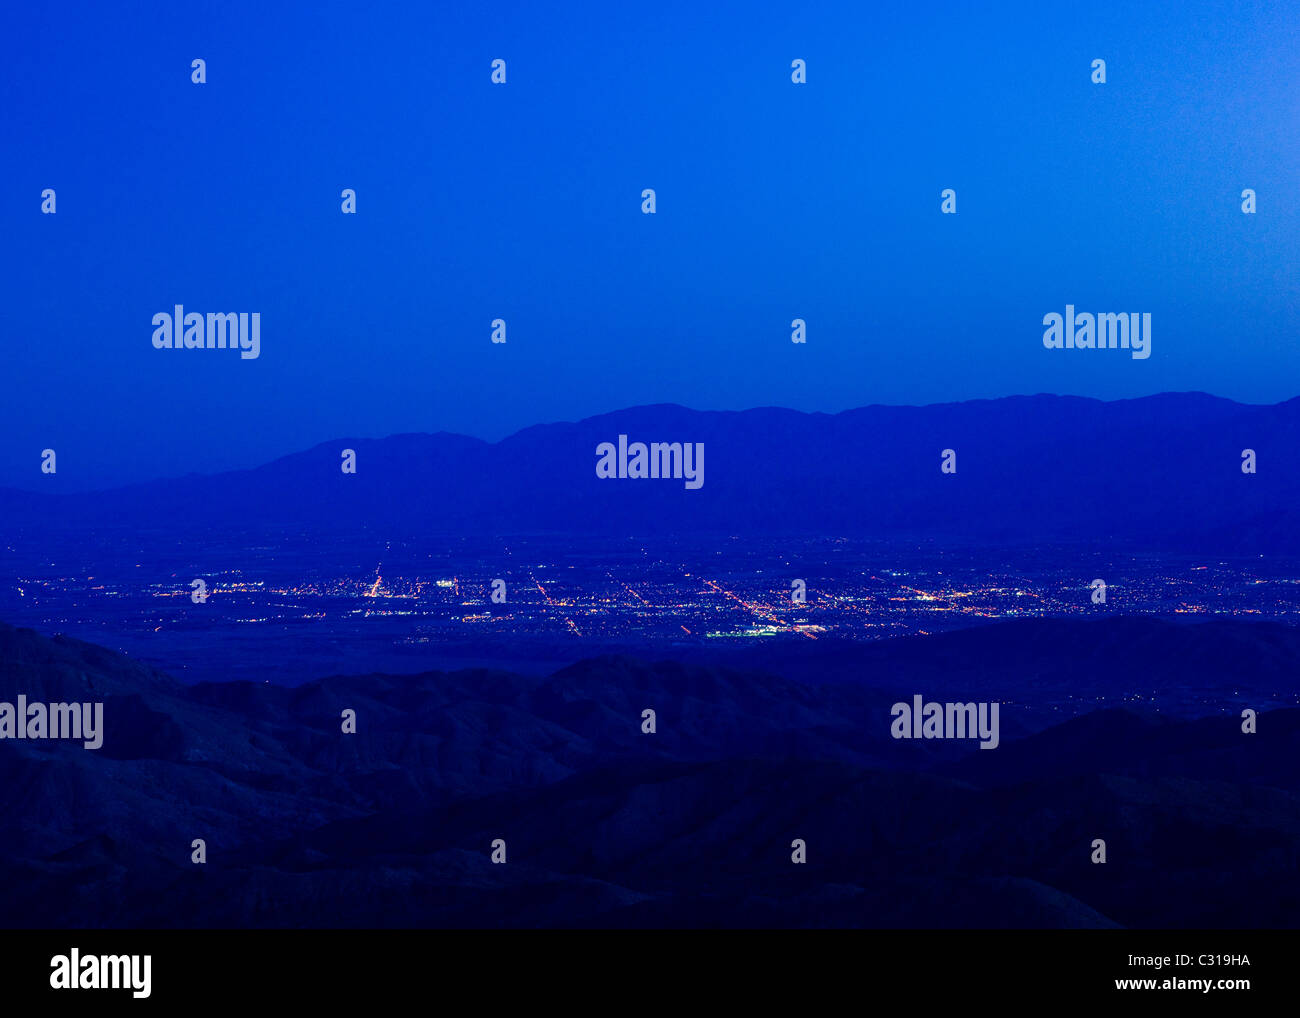 Evening city lights from a lookout - Stock Image